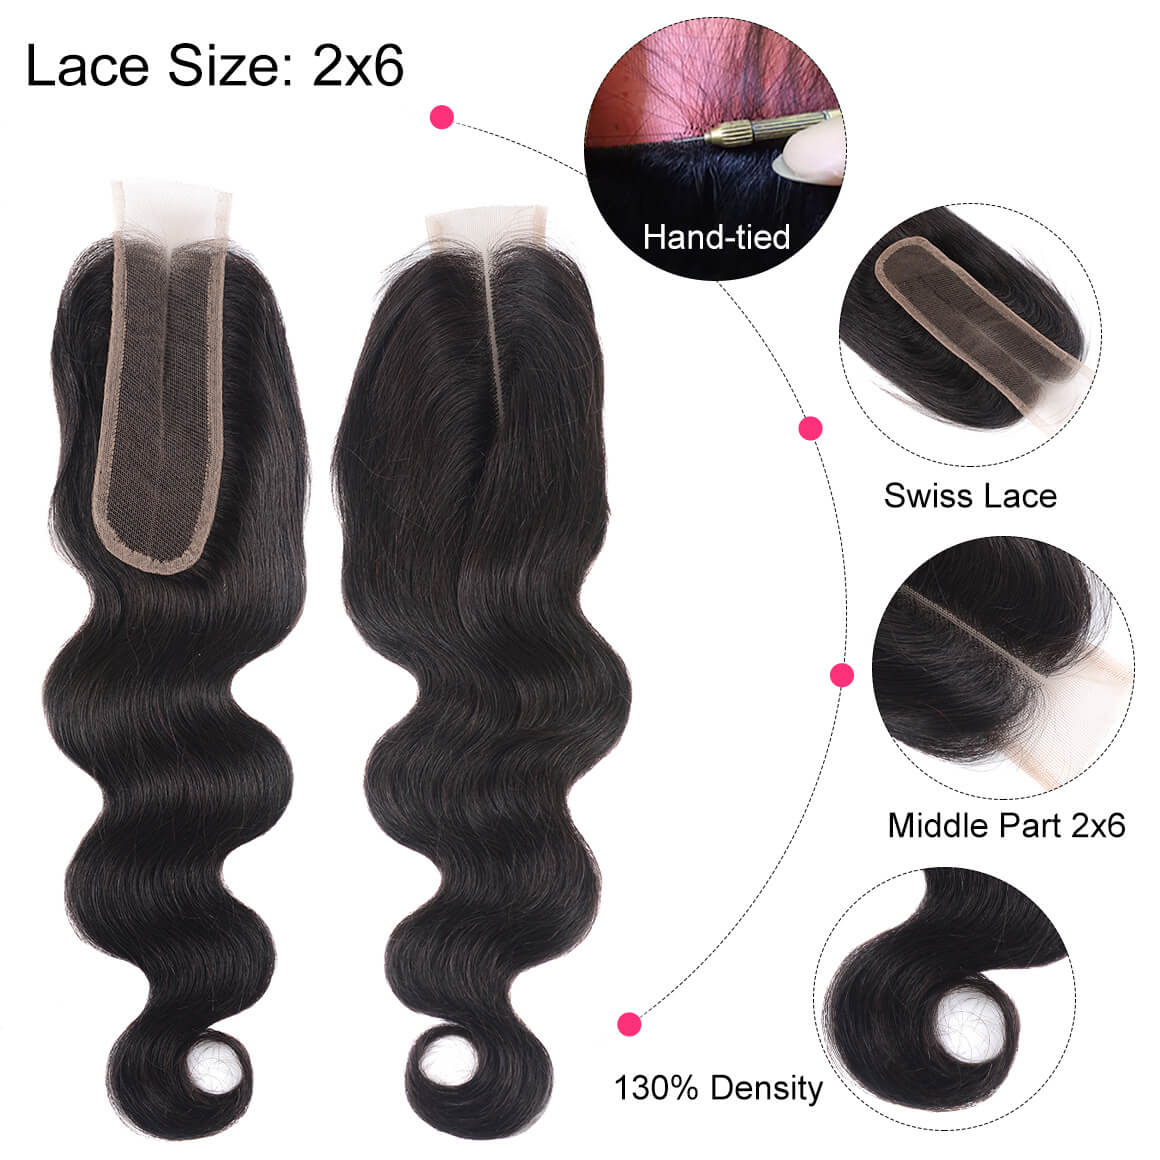 2*6 Lace Closure Body Weave